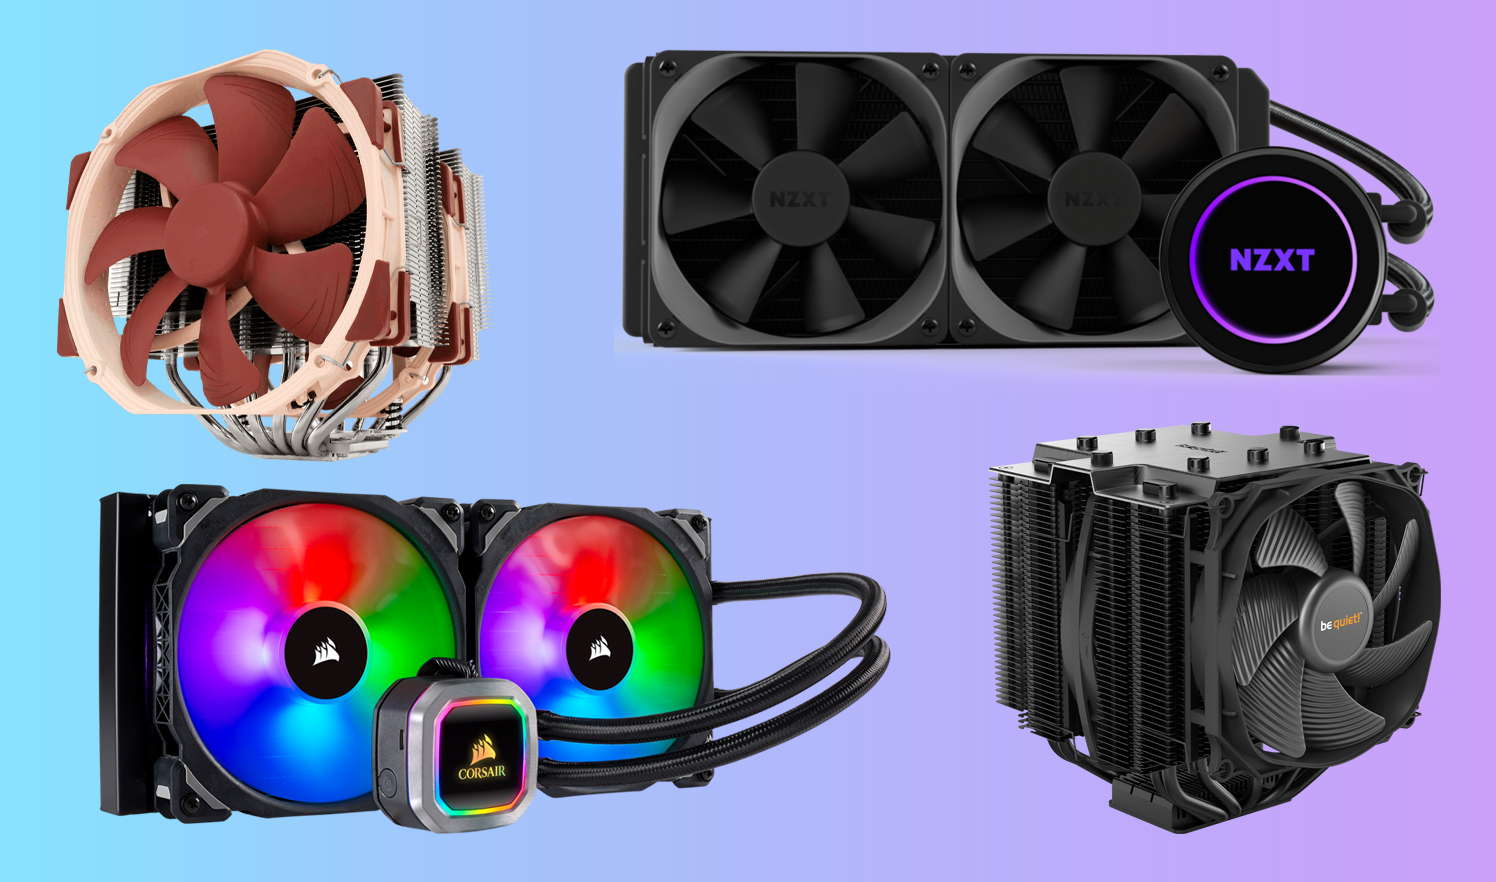 8 Best Cpu Coolers For Ryzen 7 5800x In 2021